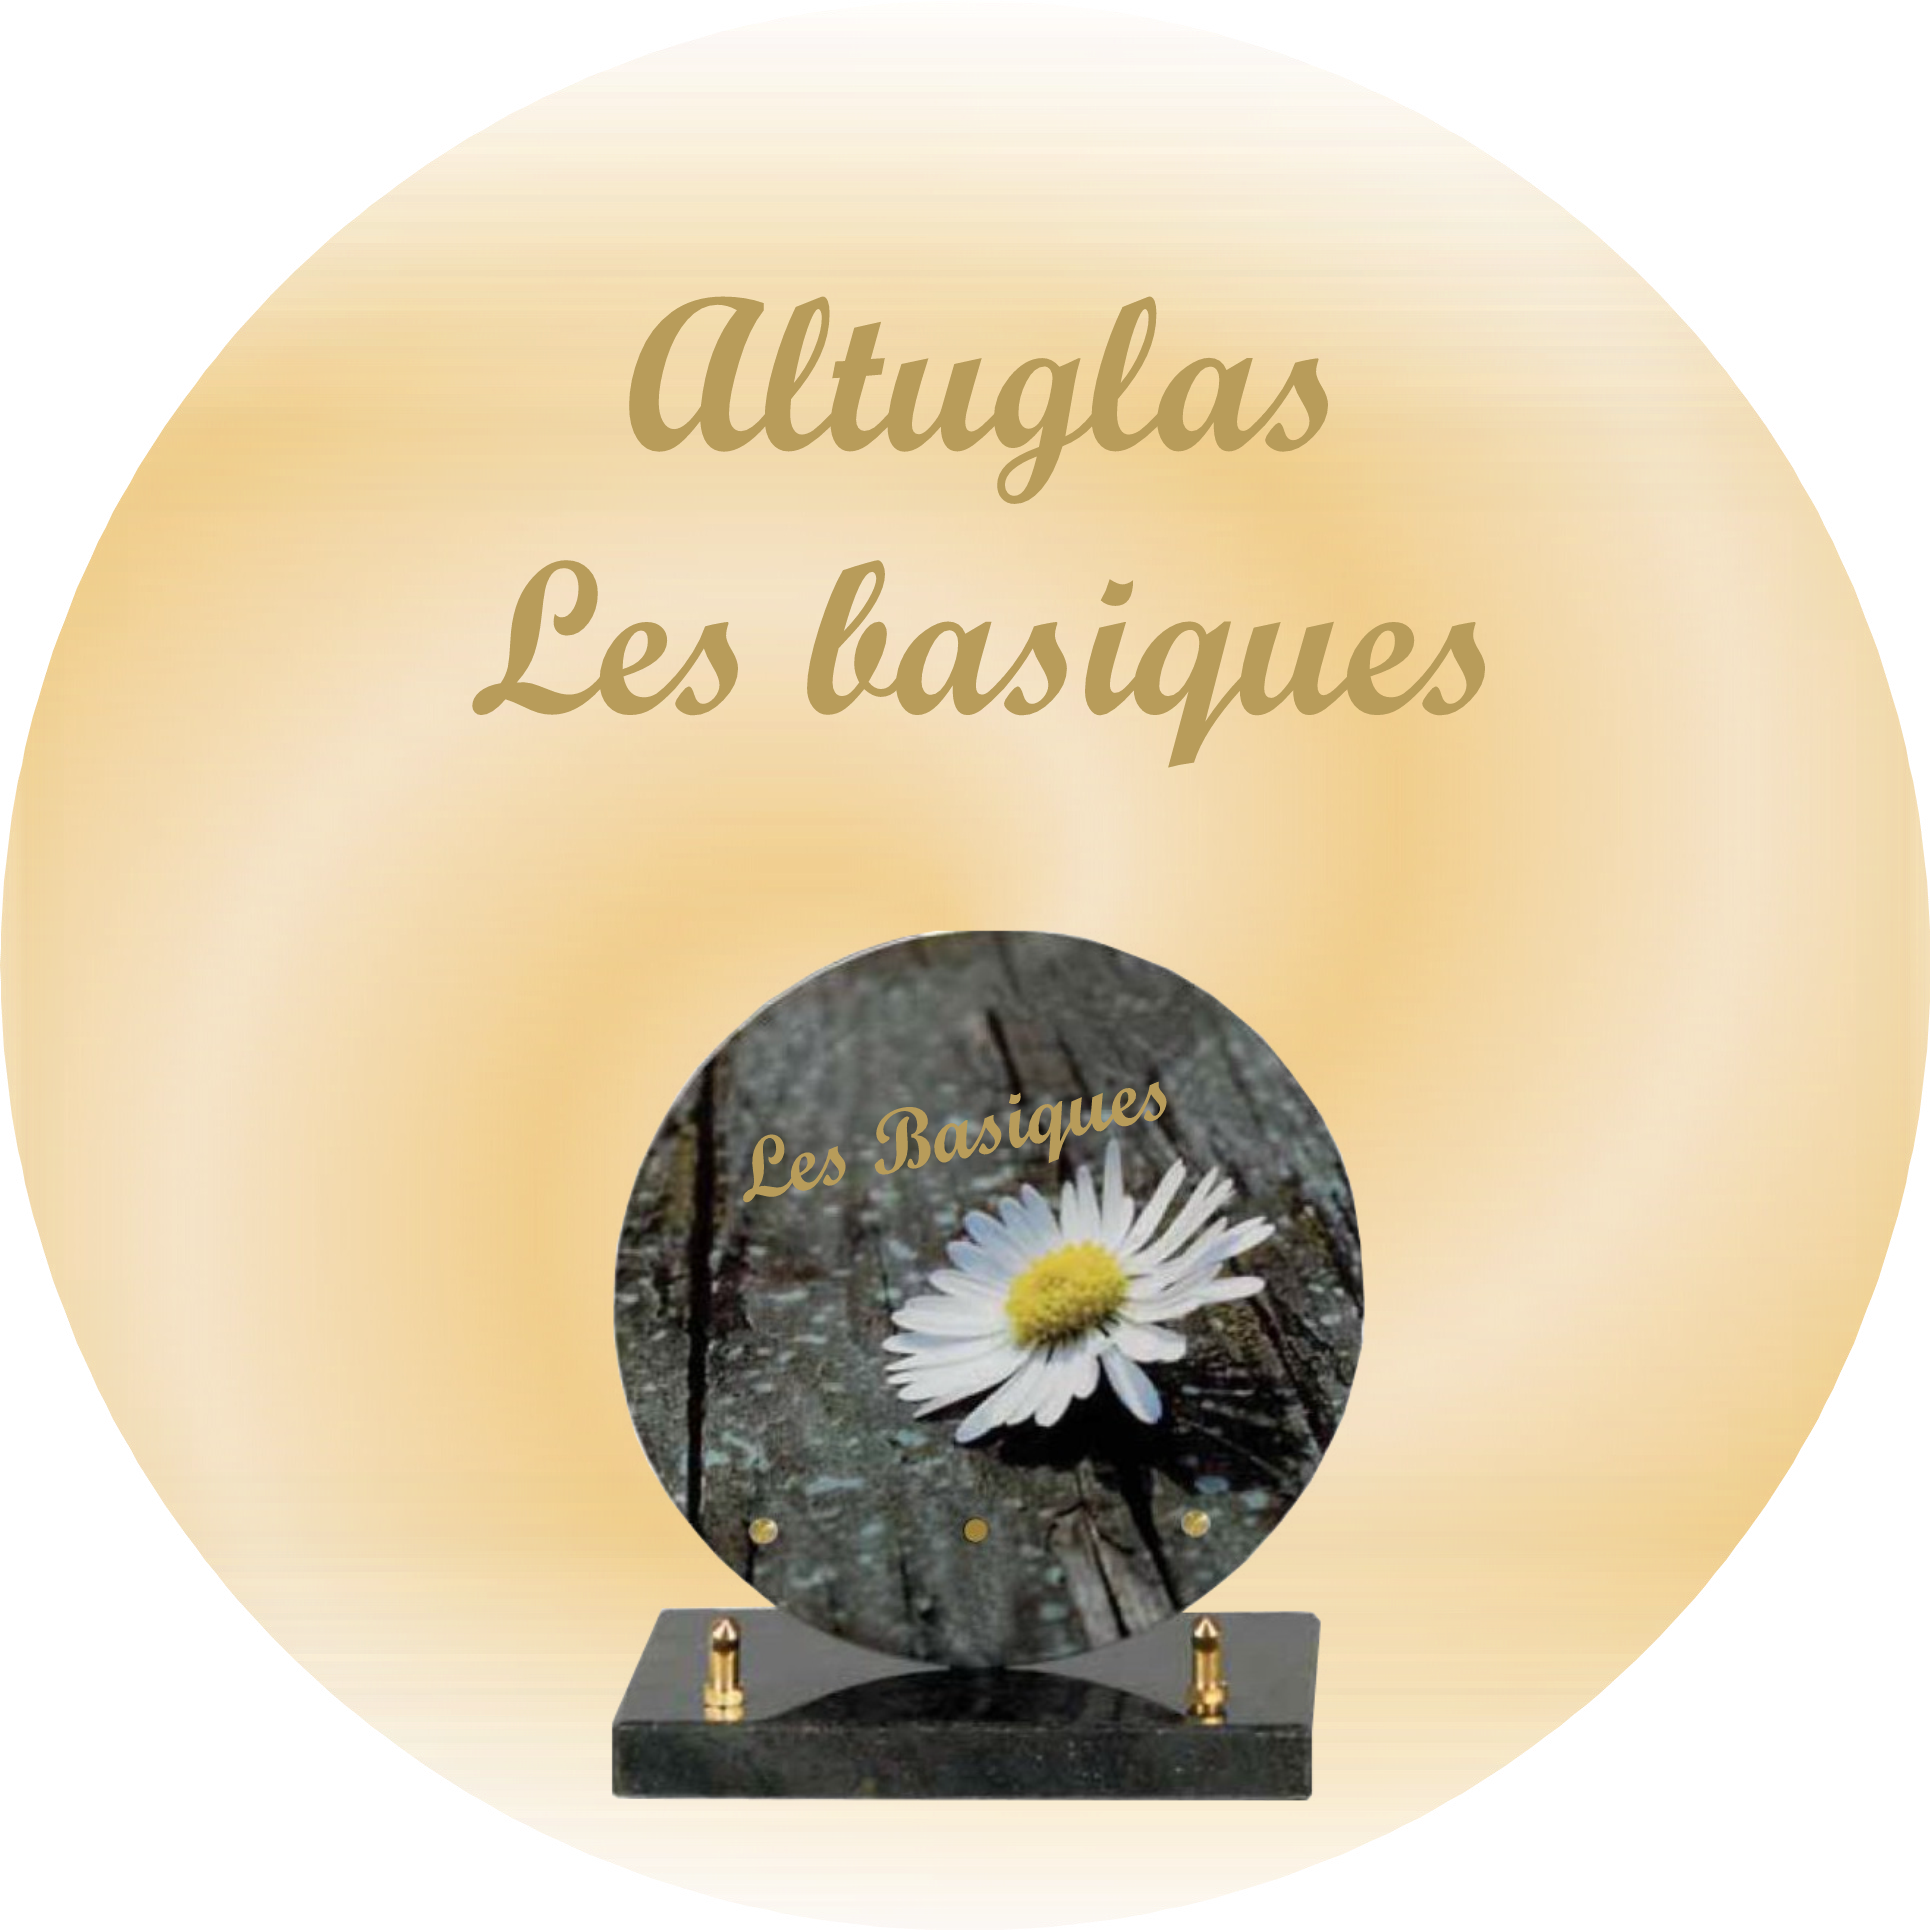 plaques fun raires altuglas plaques fun raires. Black Bedroom Furniture Sets. Home Design Ideas